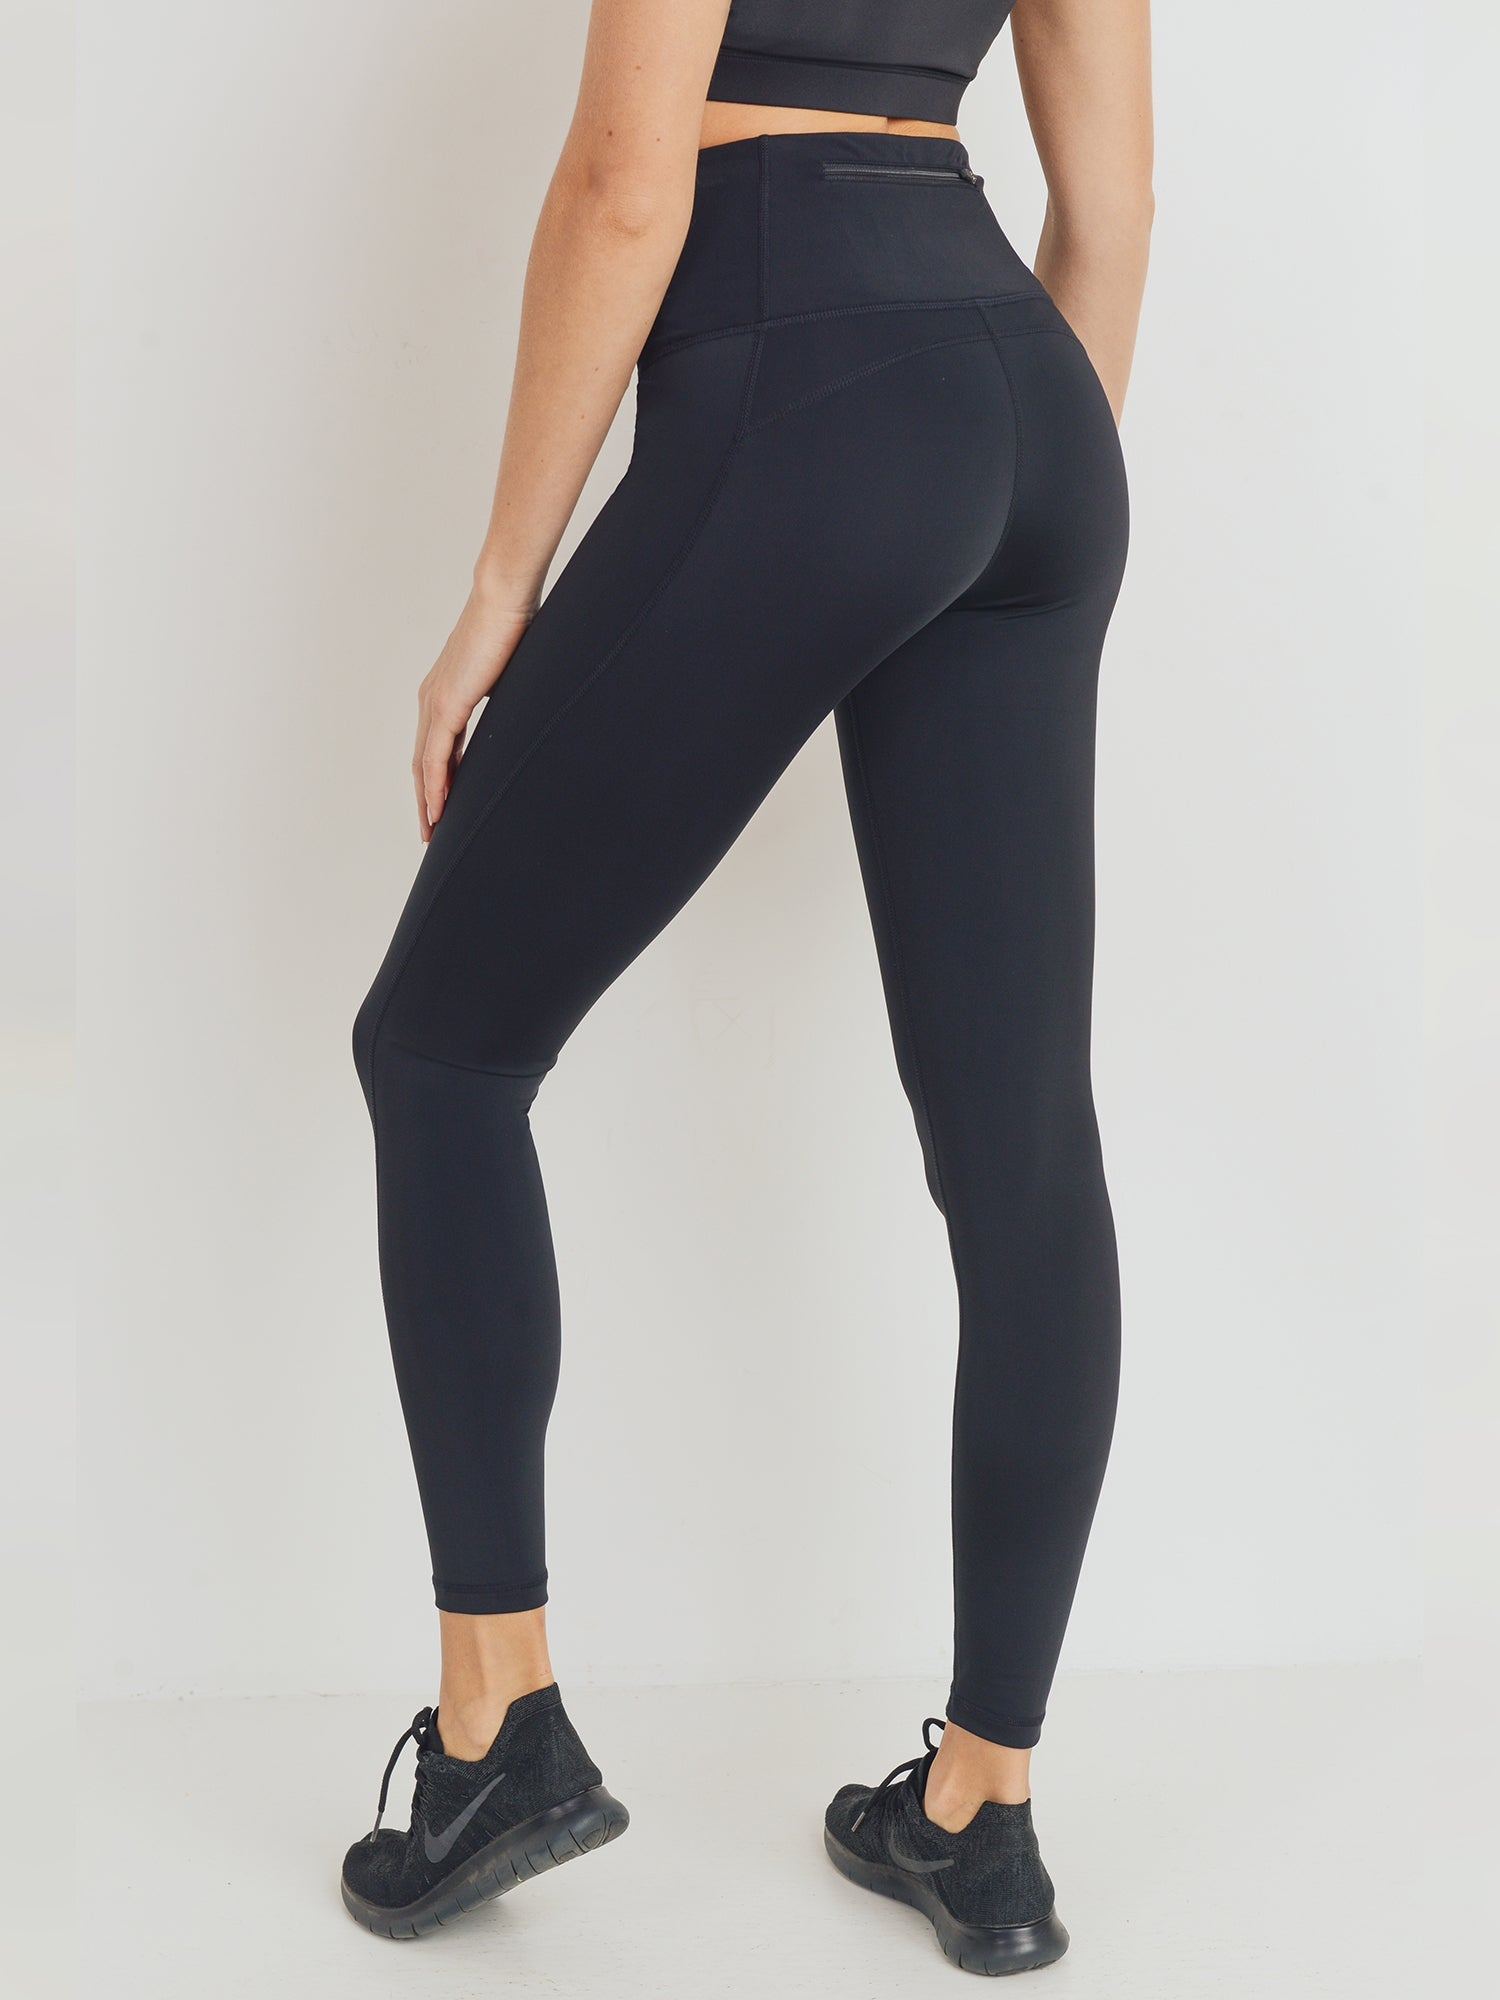 Layla Eco Legging - Black